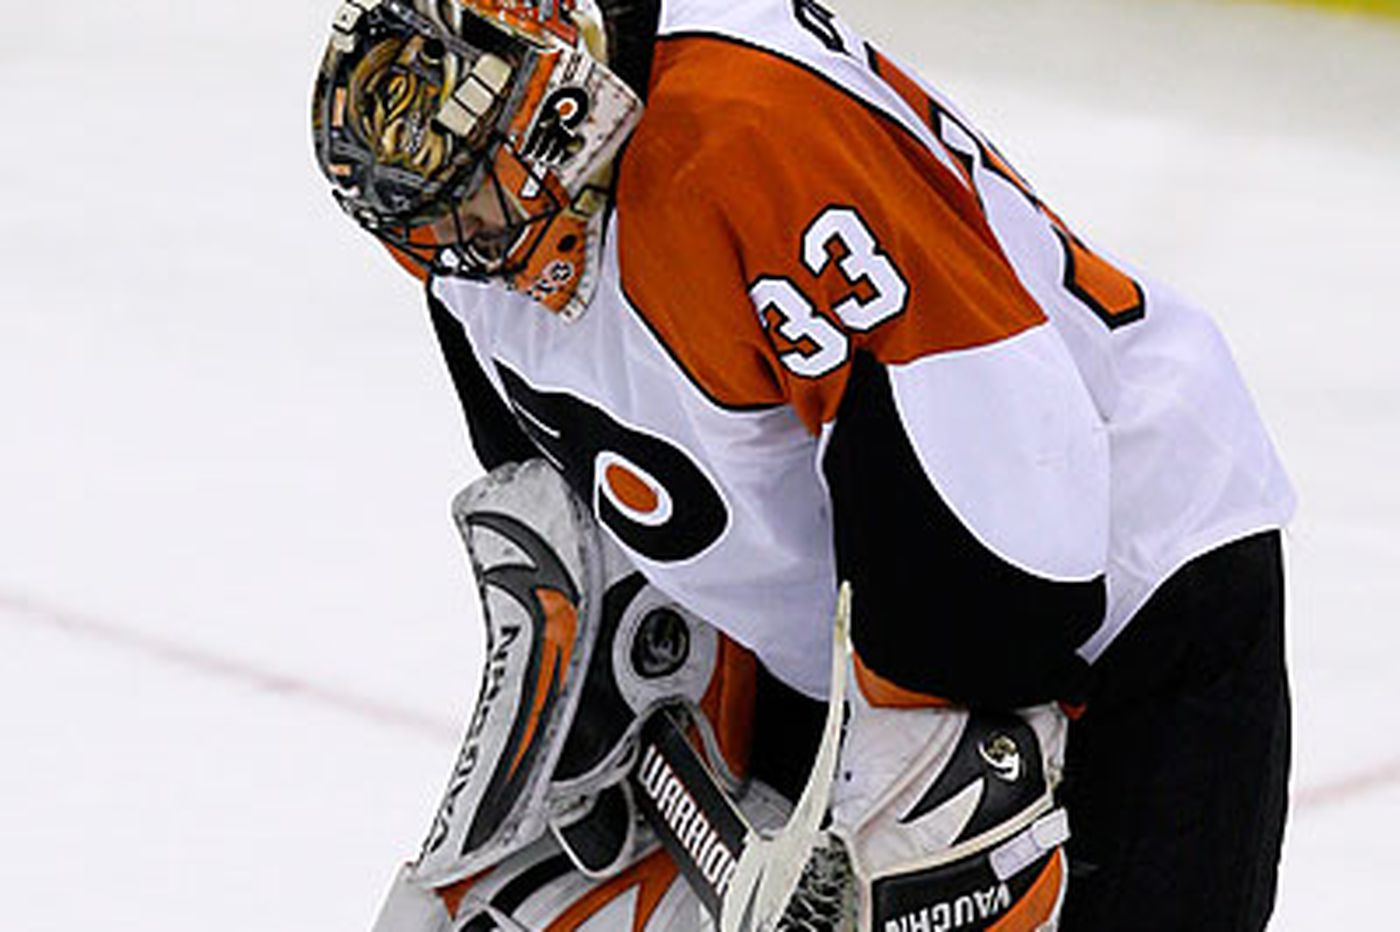 For Flyers, a 'disturbing' loss to Penguins